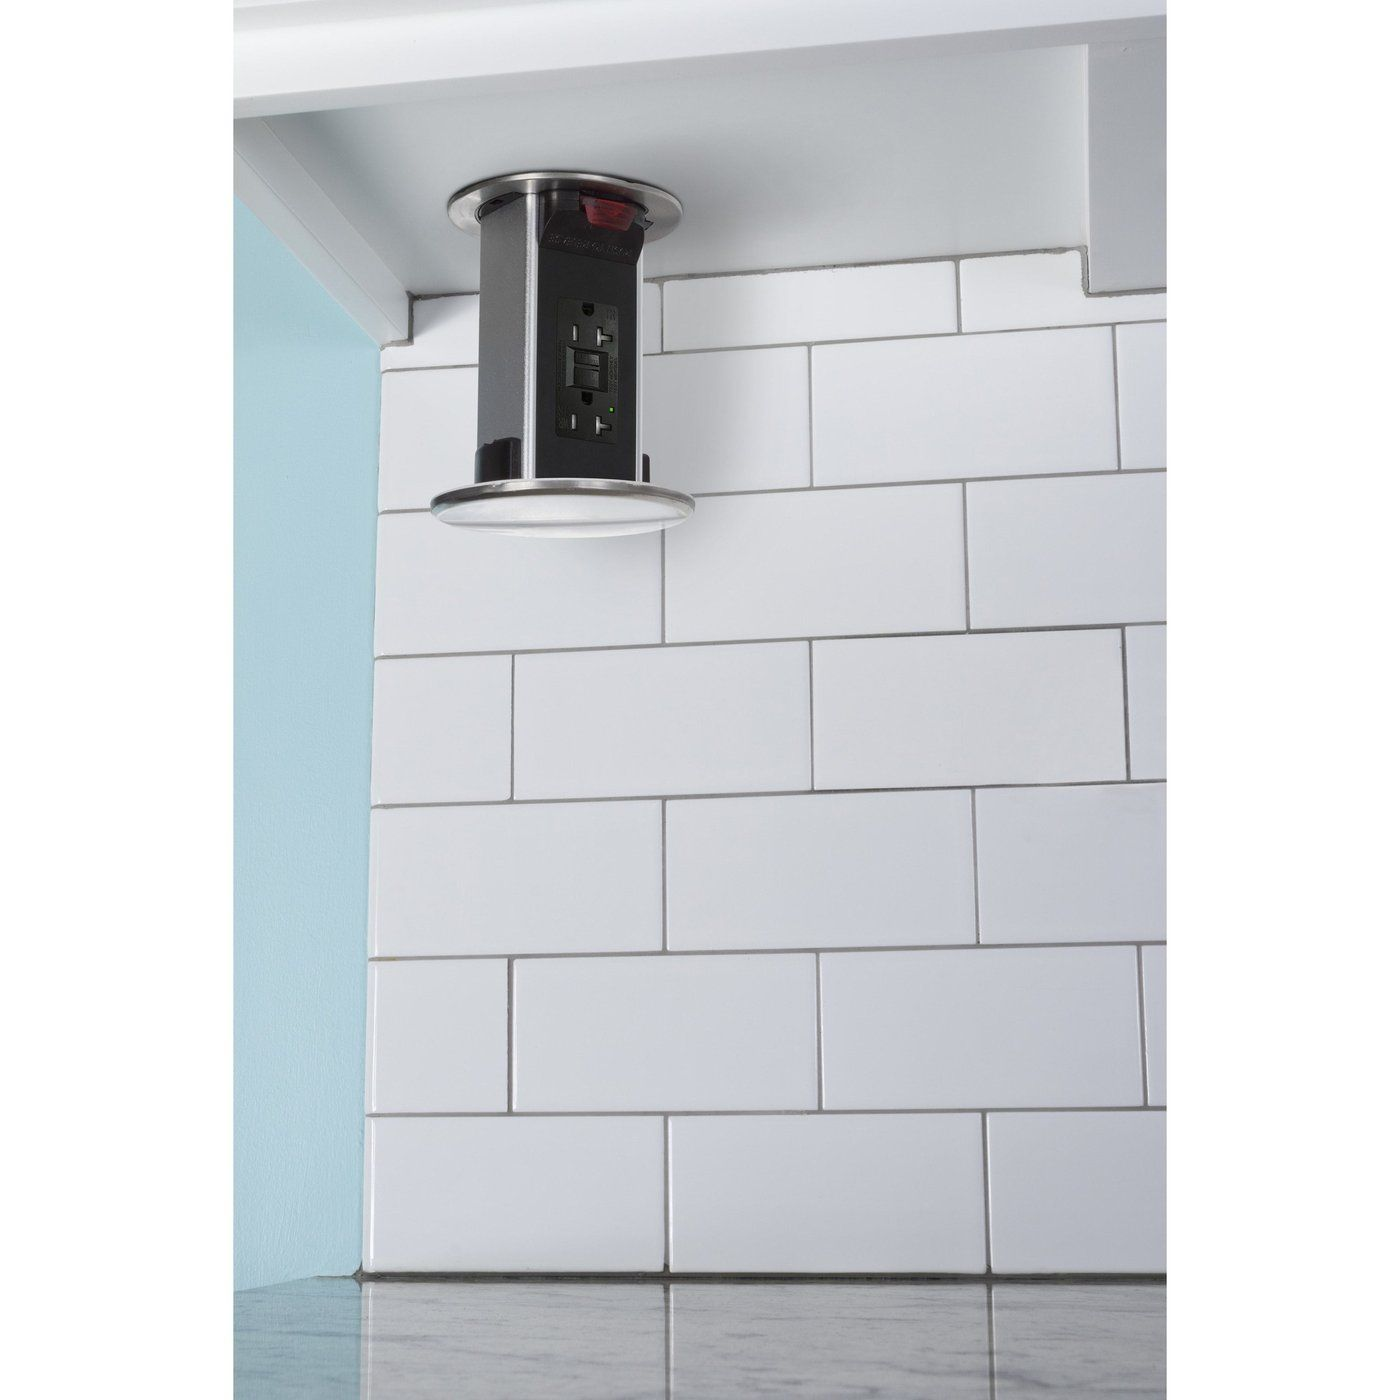 Kitchen Power Pop Ups 45 Day Return Policy Hidden Outlets Kitchen Outlets Inside Cabinets